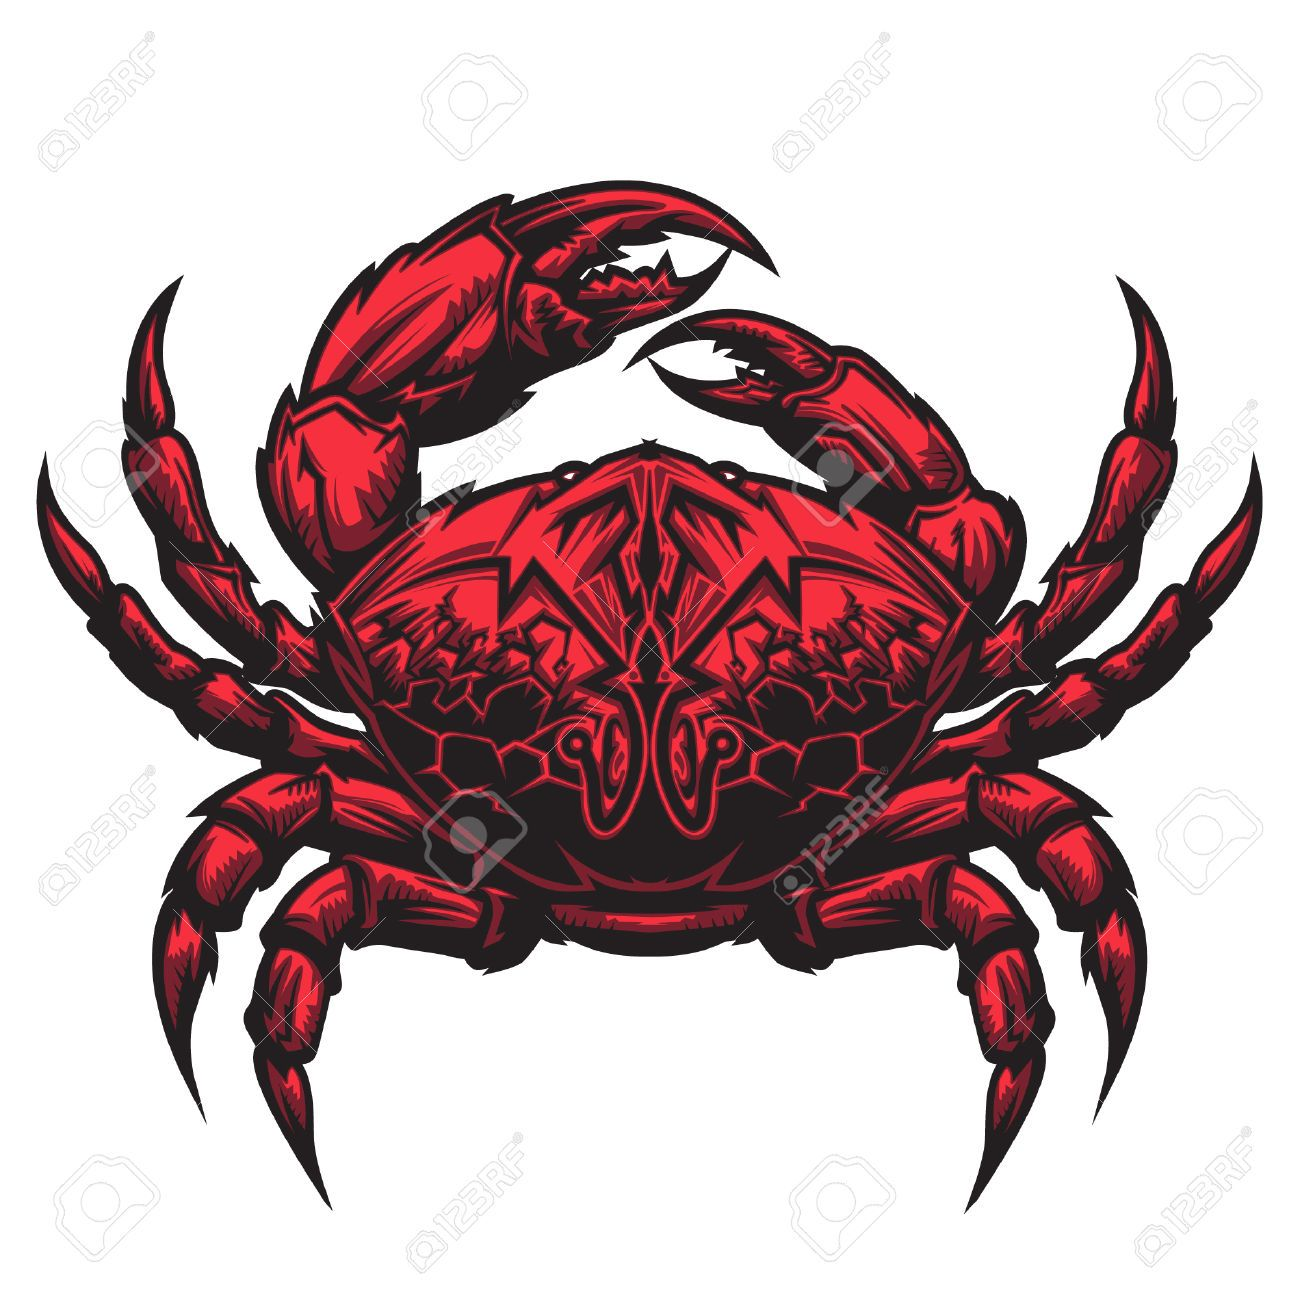 22351485 crab representing cancer zodiac sign or just a sharp cancer zodiac sign red crab representing cancer zodiac symbol according to the astrological study of the star constellation biocorpaavc Gallery